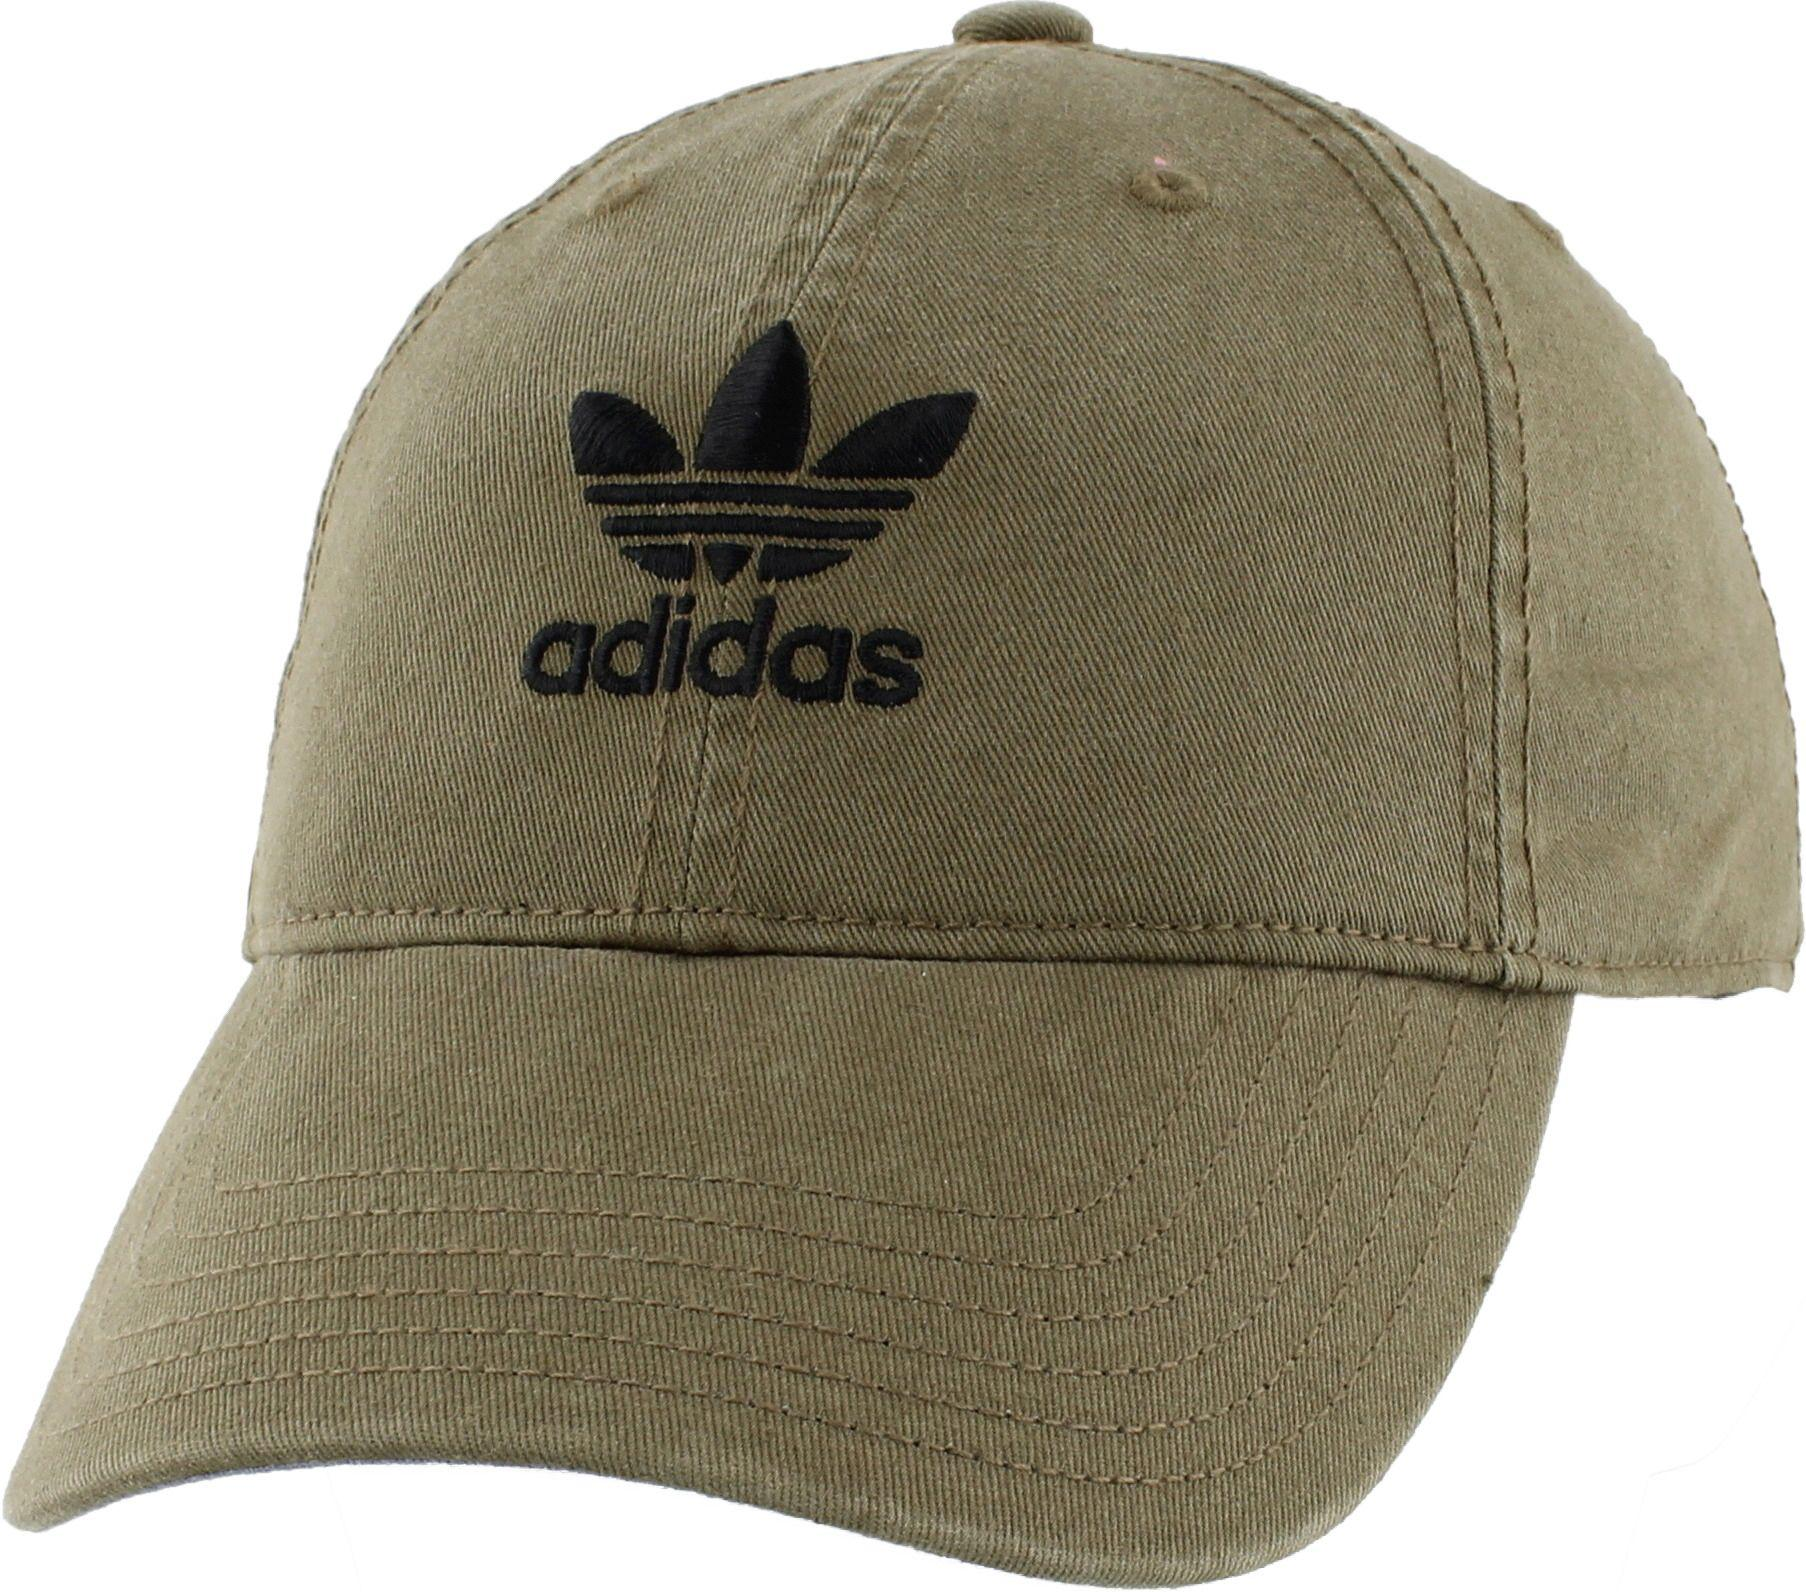 Lyst - adidas Originals Relaxed Strapback Hat in Green 99ecc1ca92d